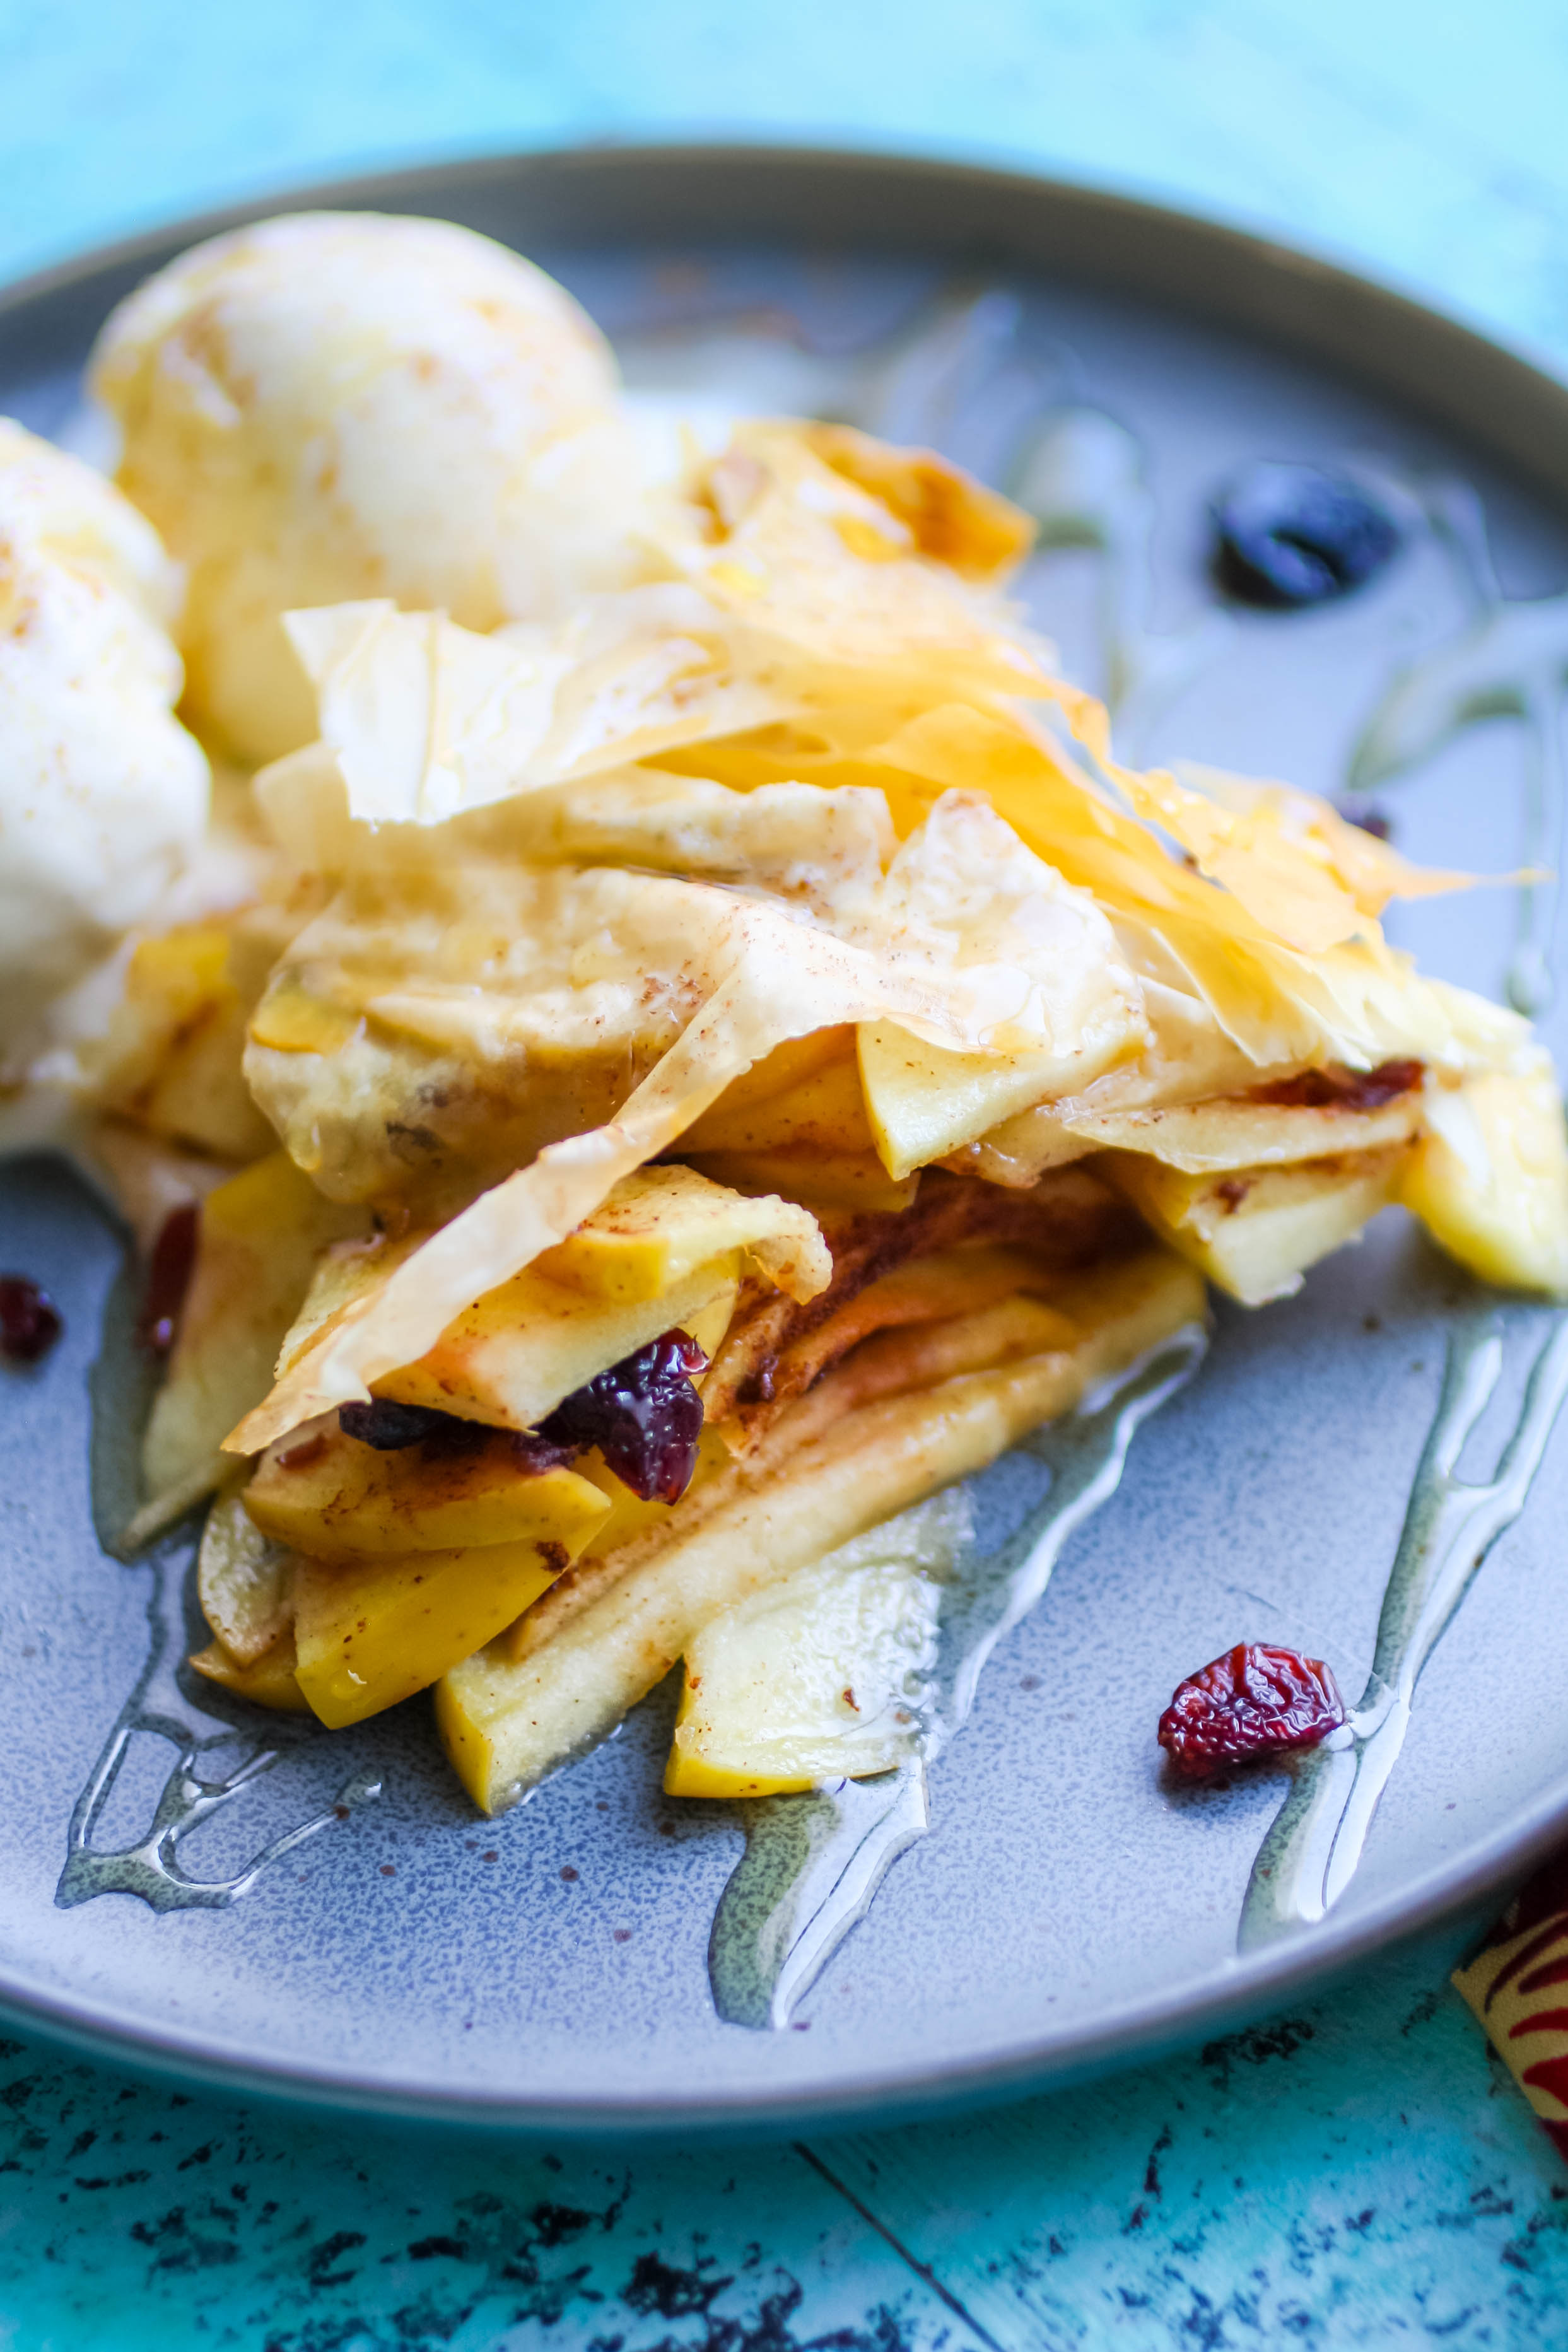 Apple-Cranberry Tart in Phyllo is flaky and fabulous as dessert! Apple-Cranberry Tart in Phyllo is a tasty treat that's flaky and fun!